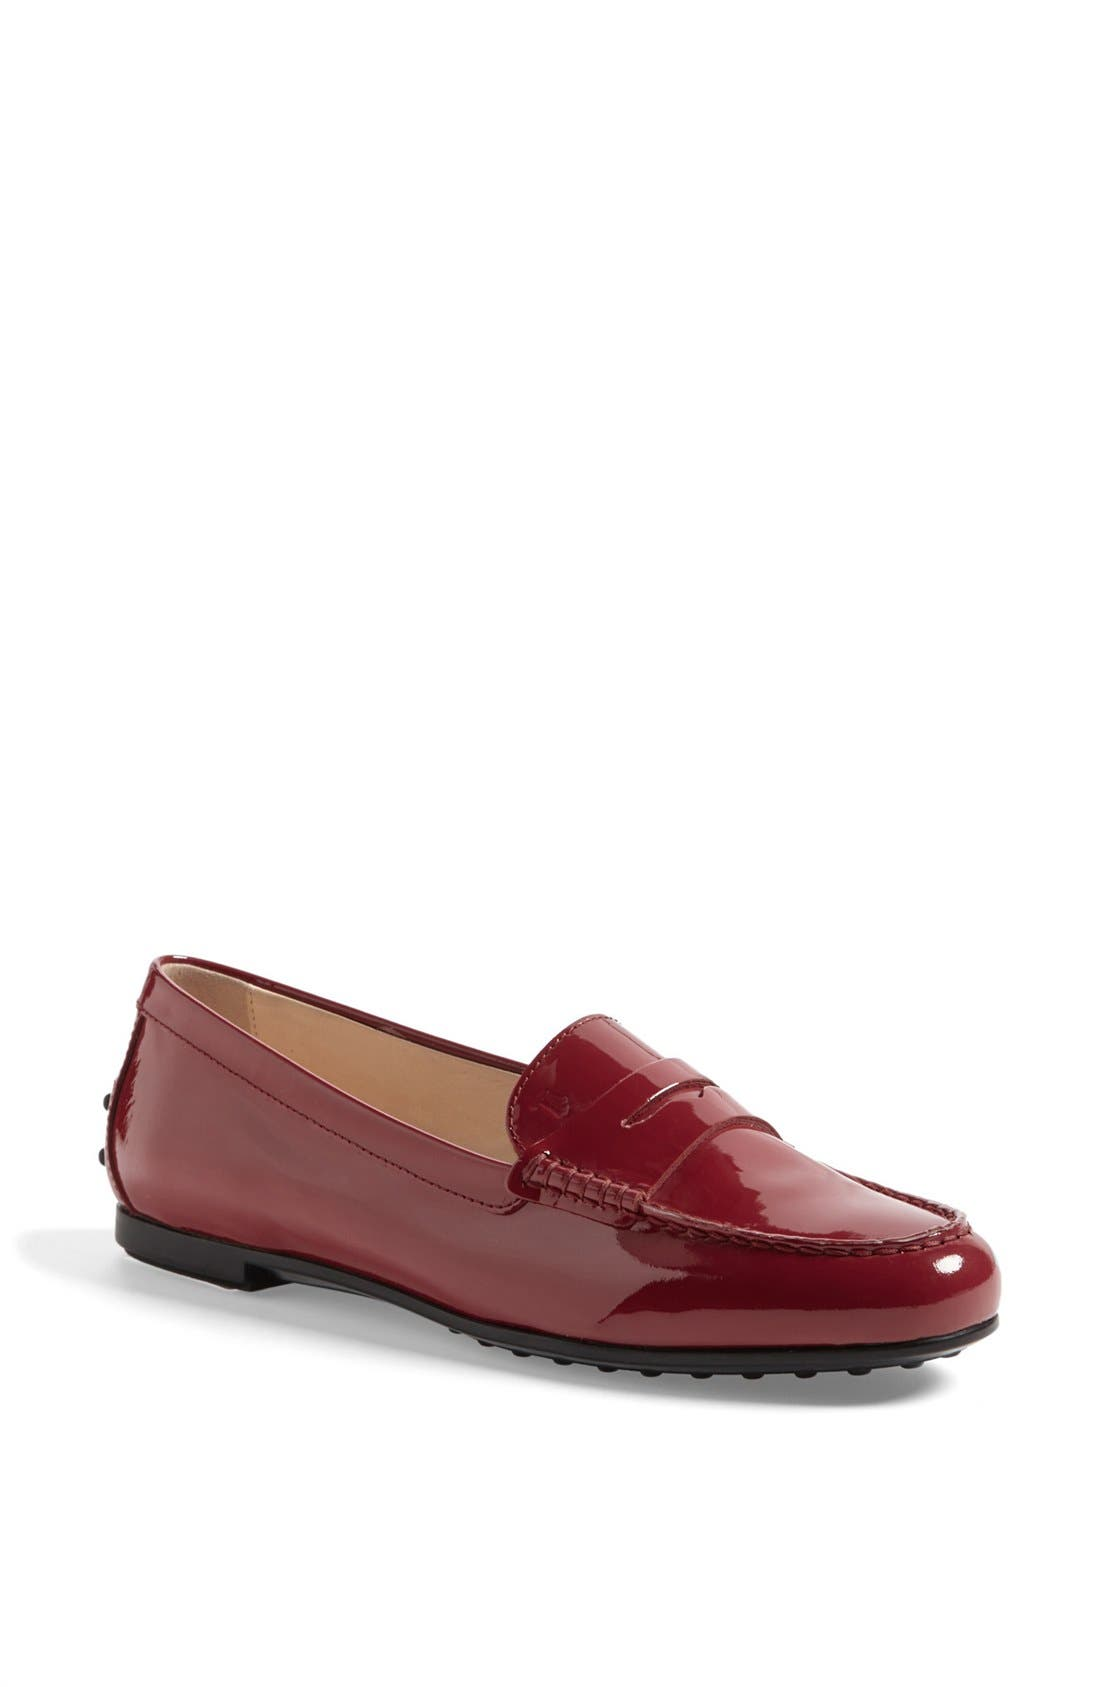 Alternate Image 1 Selected - Tod's 'Gomma' Patent Leather Driving Moccasin